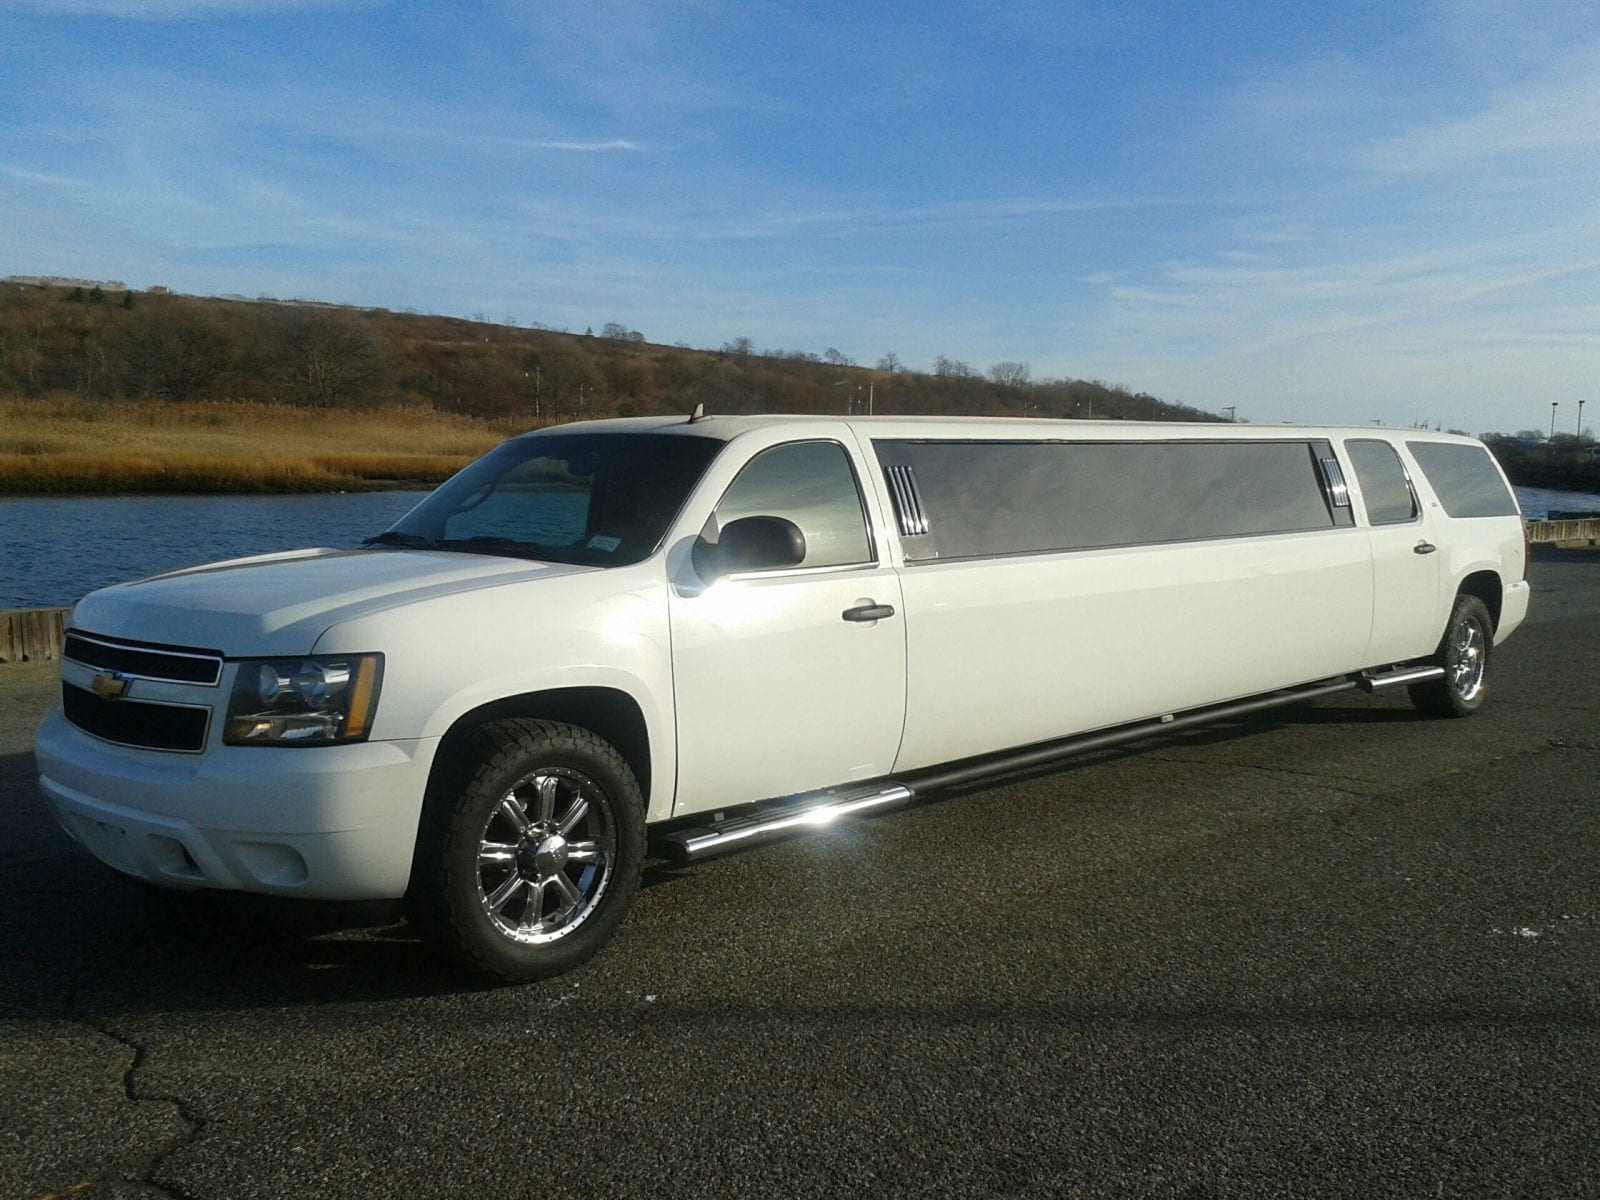 showroom - Chevy Suburban Stretch SUV Limo